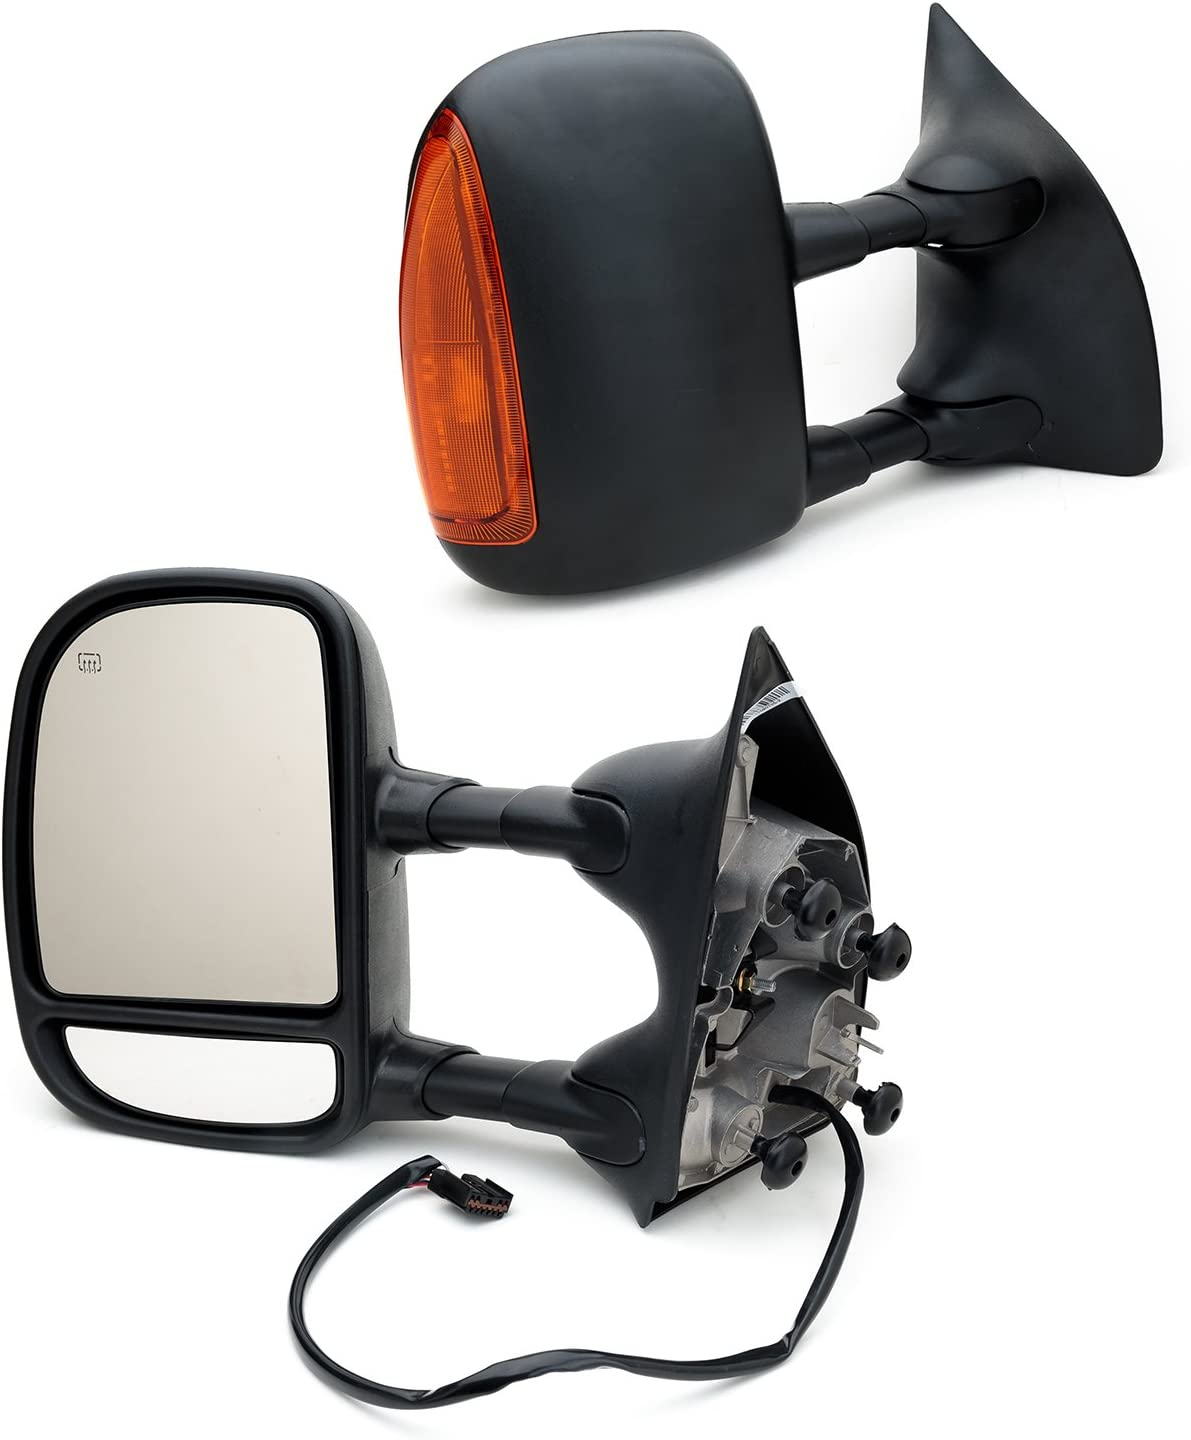 New Passenger Side Power Operated Mirror For Ford F-Series Super Duty 1999-2007